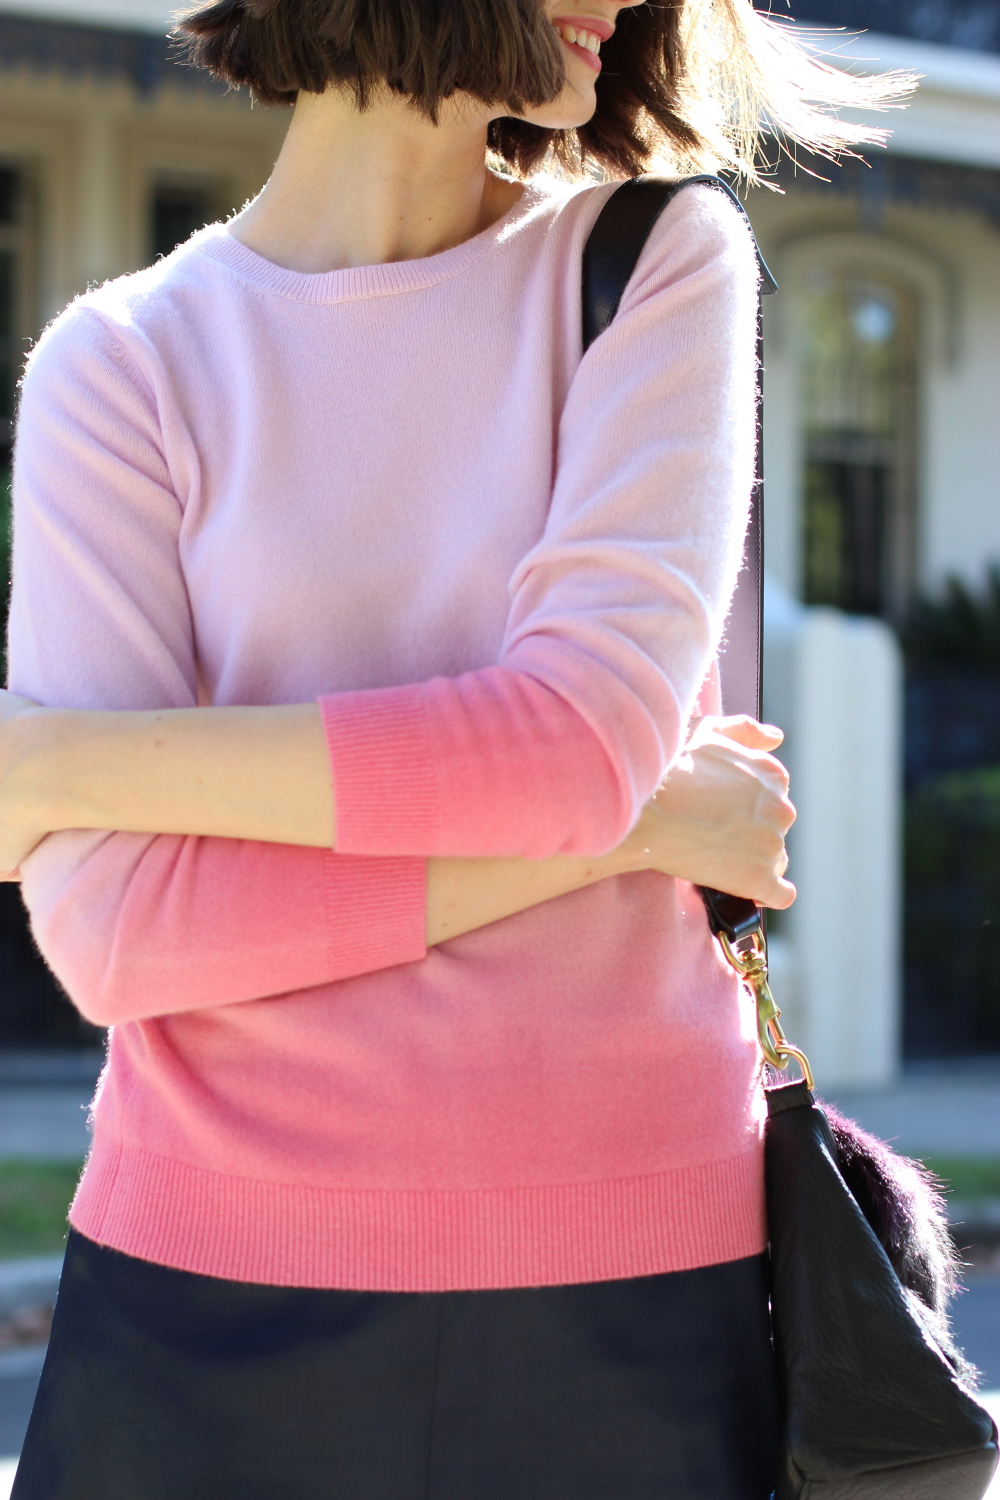 BY CHILL BLOG Pink cashmere sweater by Boden Clothing